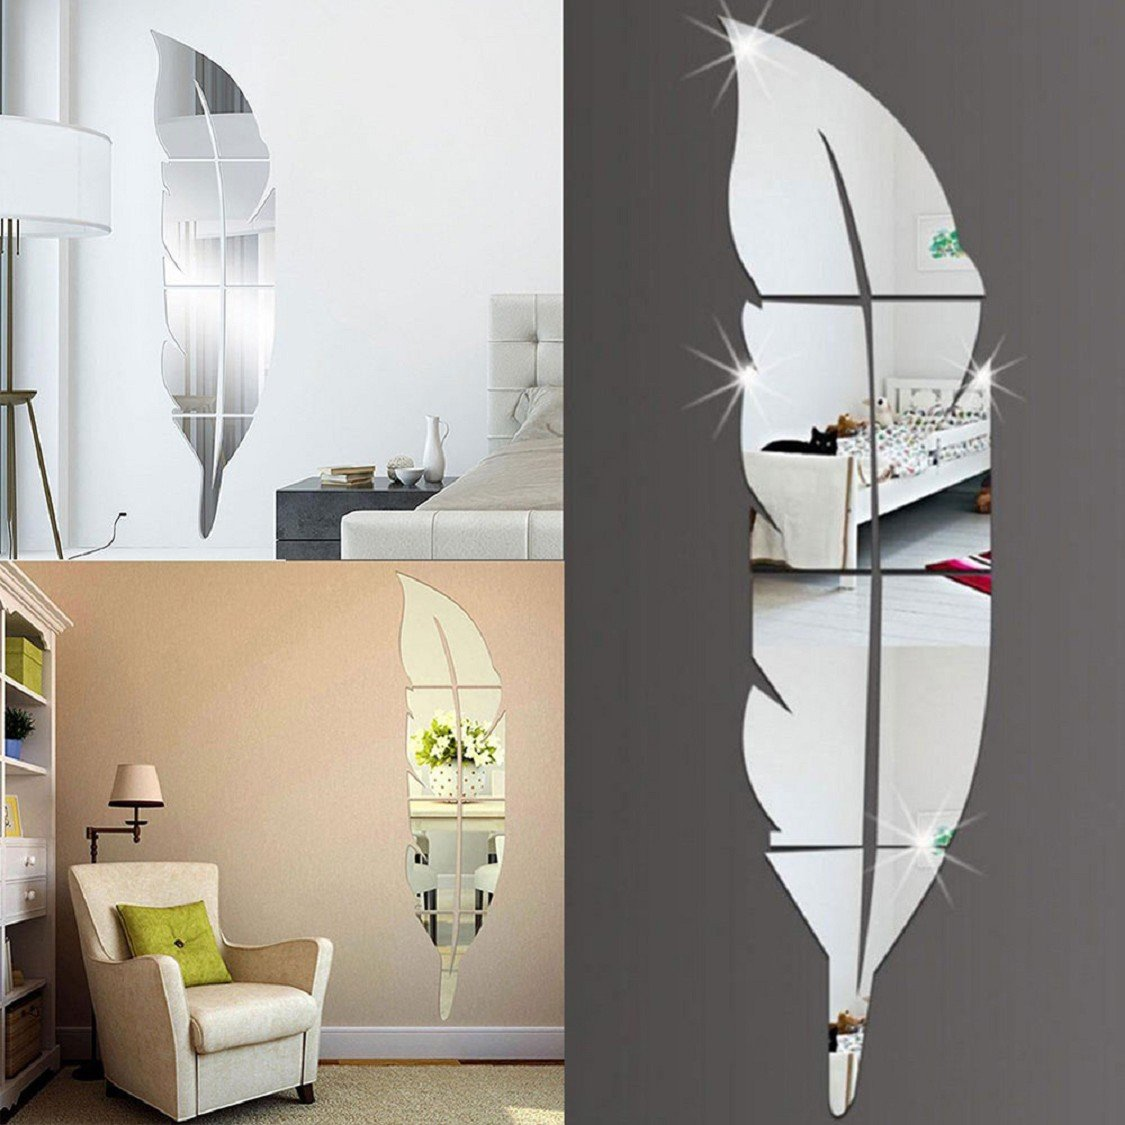 Naladoo 3D Feather Mirror Wall Stickers Acrylic Art Mirror Decal Mural Wall Sticker Fashion Surface TV Sofa Setting Wall Wallpaper,73X18cm,Silver IU32566436436